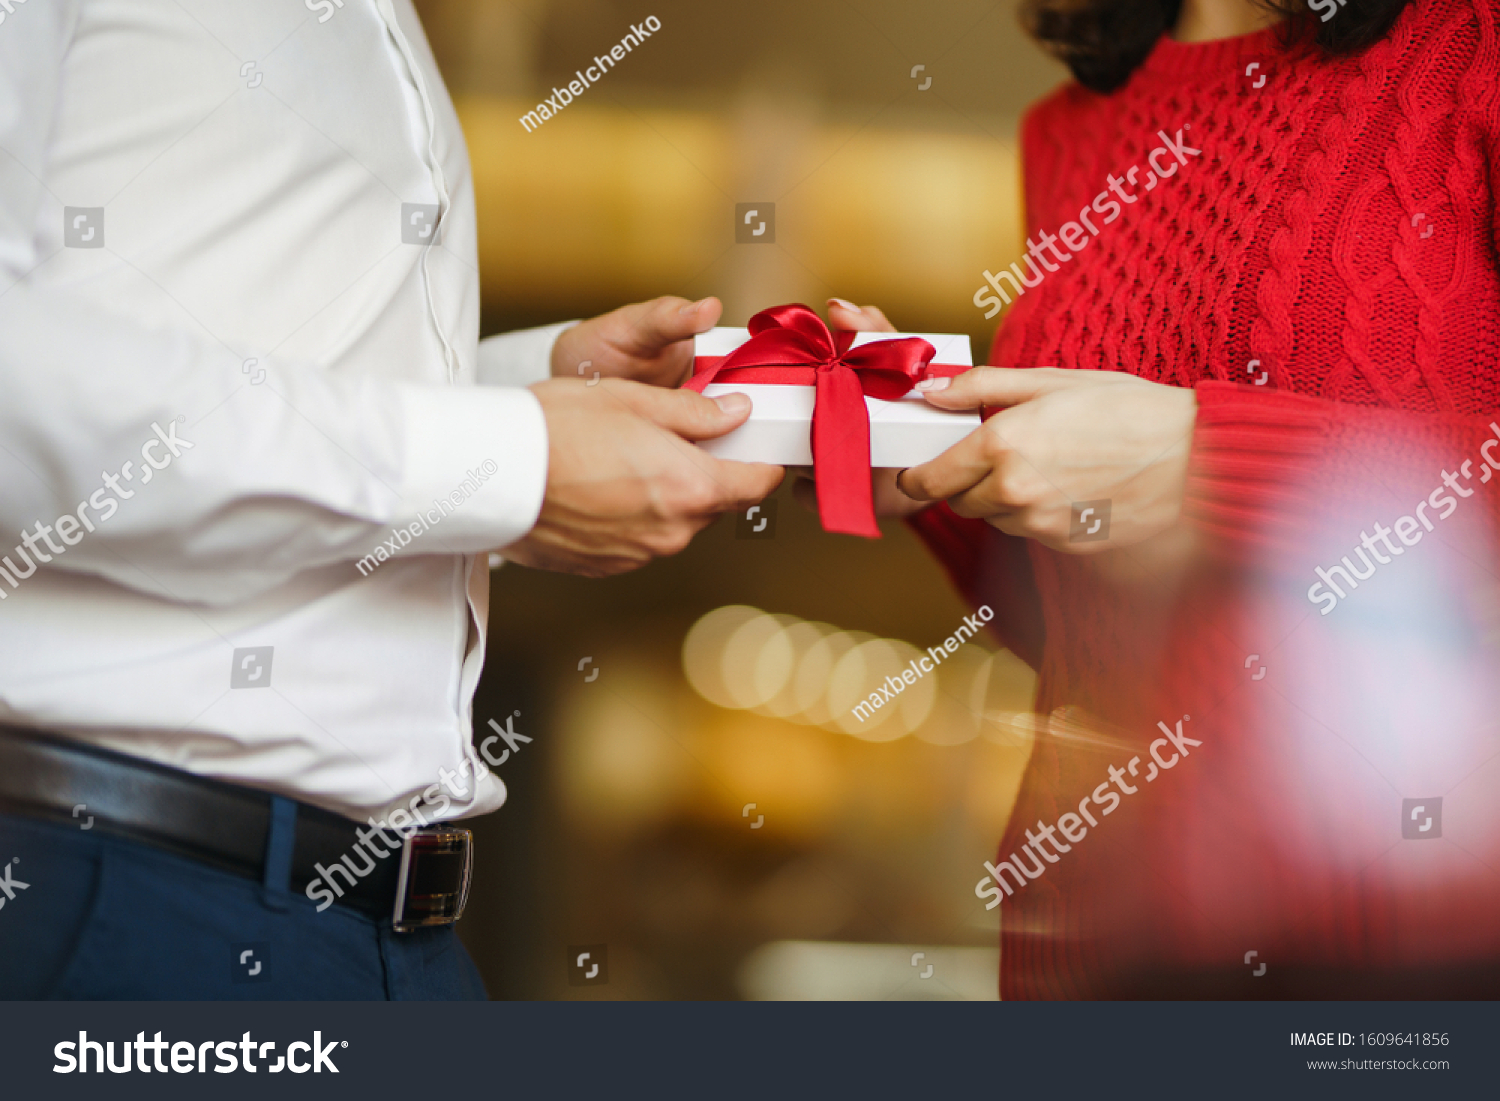 Man gives to his woman a gift box with red ribbon. Hands of man gives surprise gift box for girl. Lovers give each other gifts. Young loving couple celebrating Valentine's Day. Romantic day. #1609641856